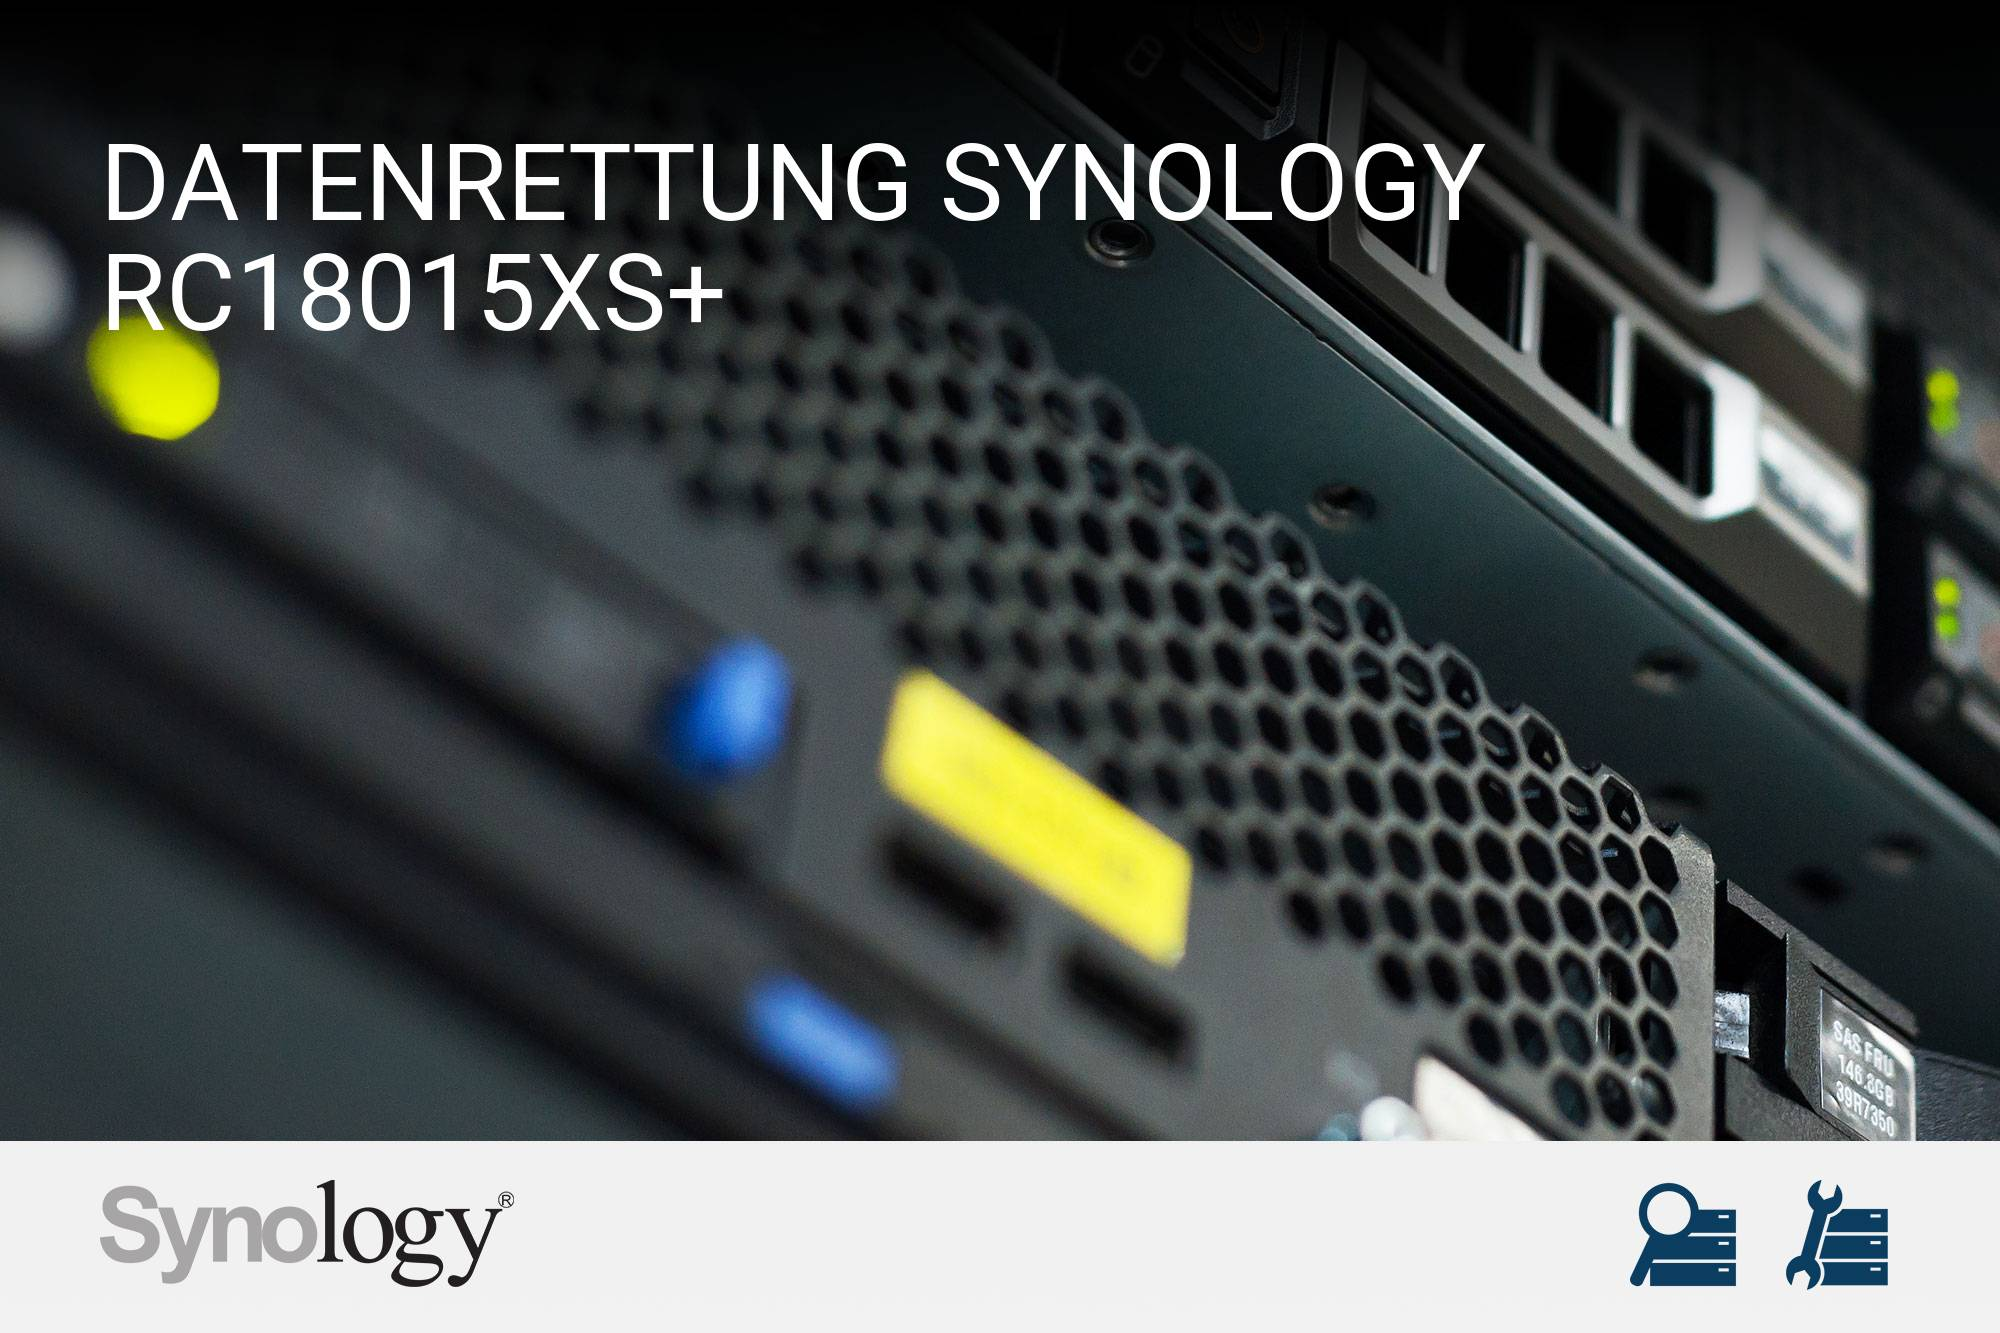 Synology RC18015xs+